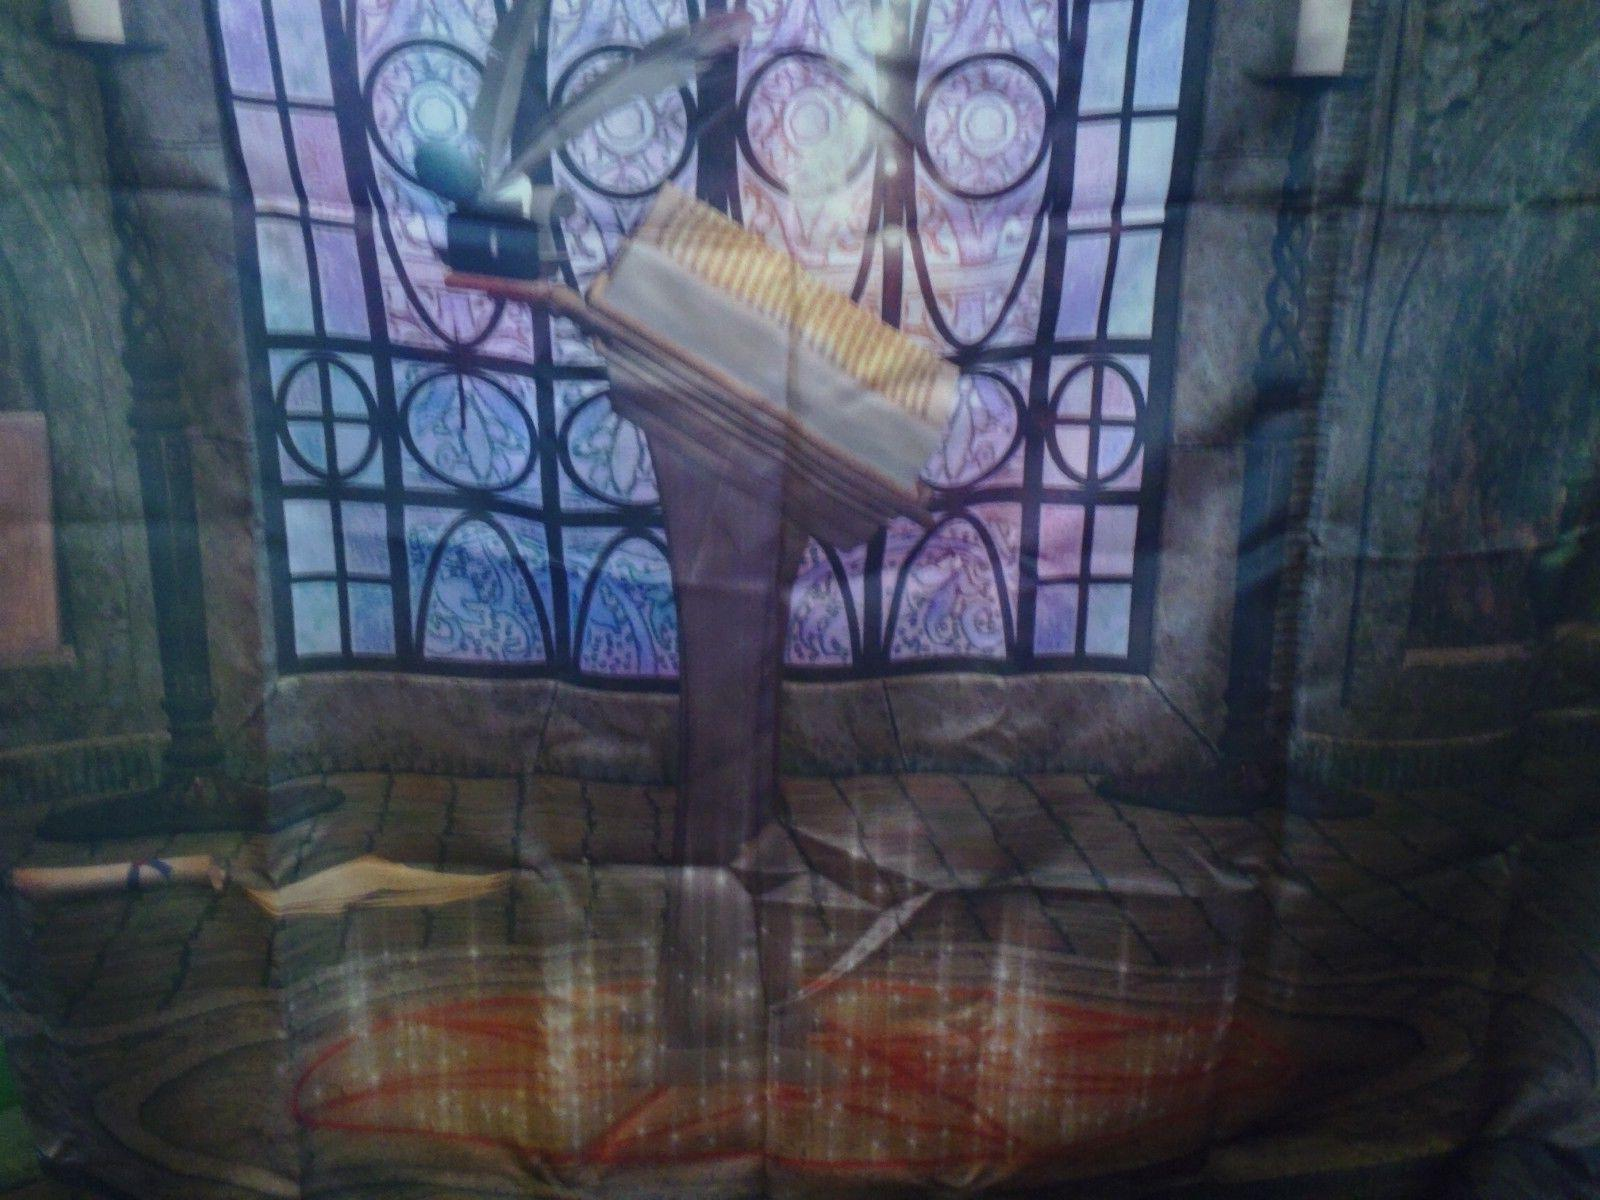 AMBESONNE TABLECLOTH HOUSE DECOR GOTHIC WINDOW BOOK LILAC